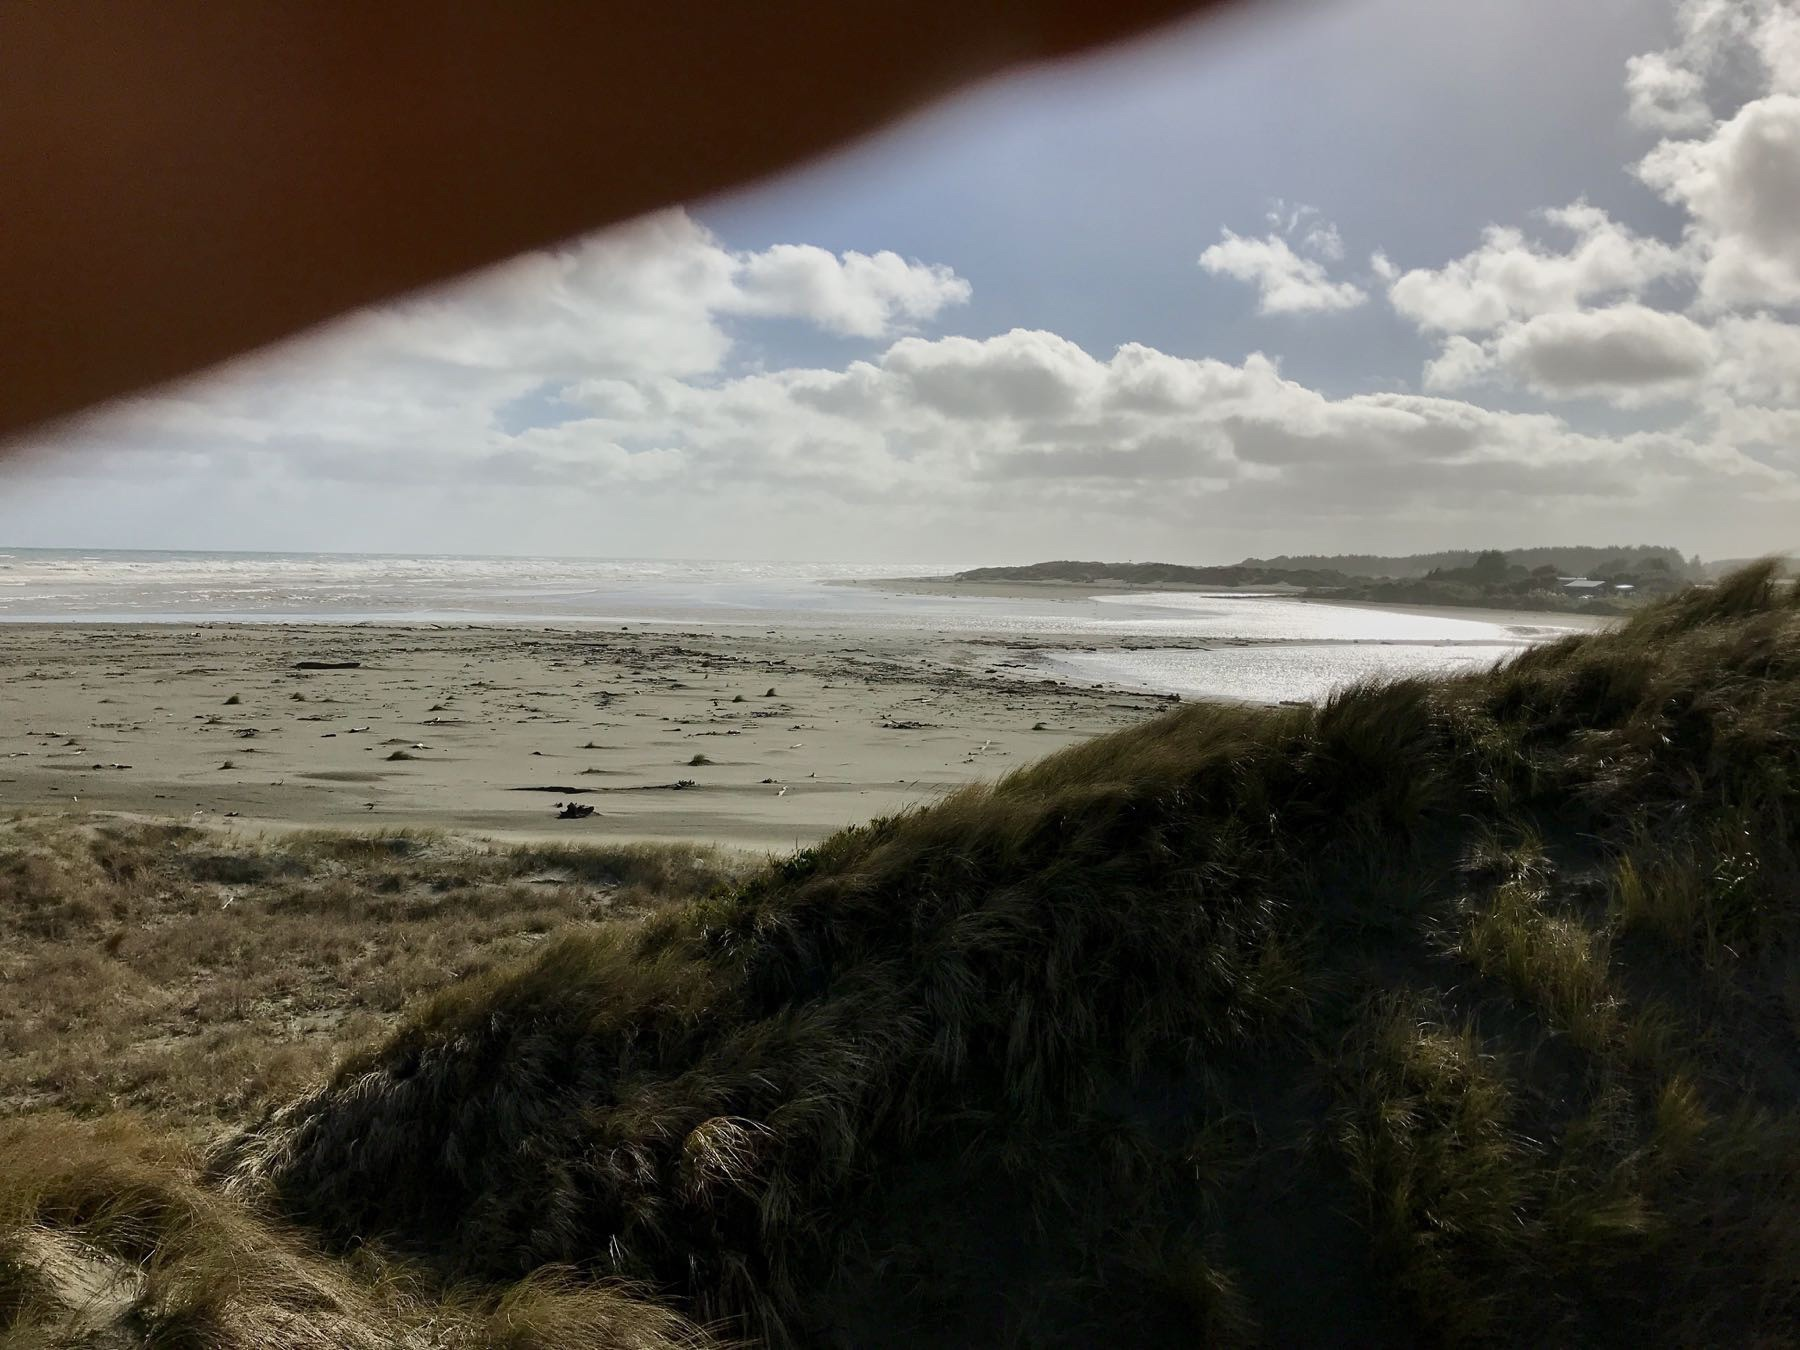 Photo of the river mouth, but with a hand obscuring top left, at an angle that mirrors a sand dune on the right.